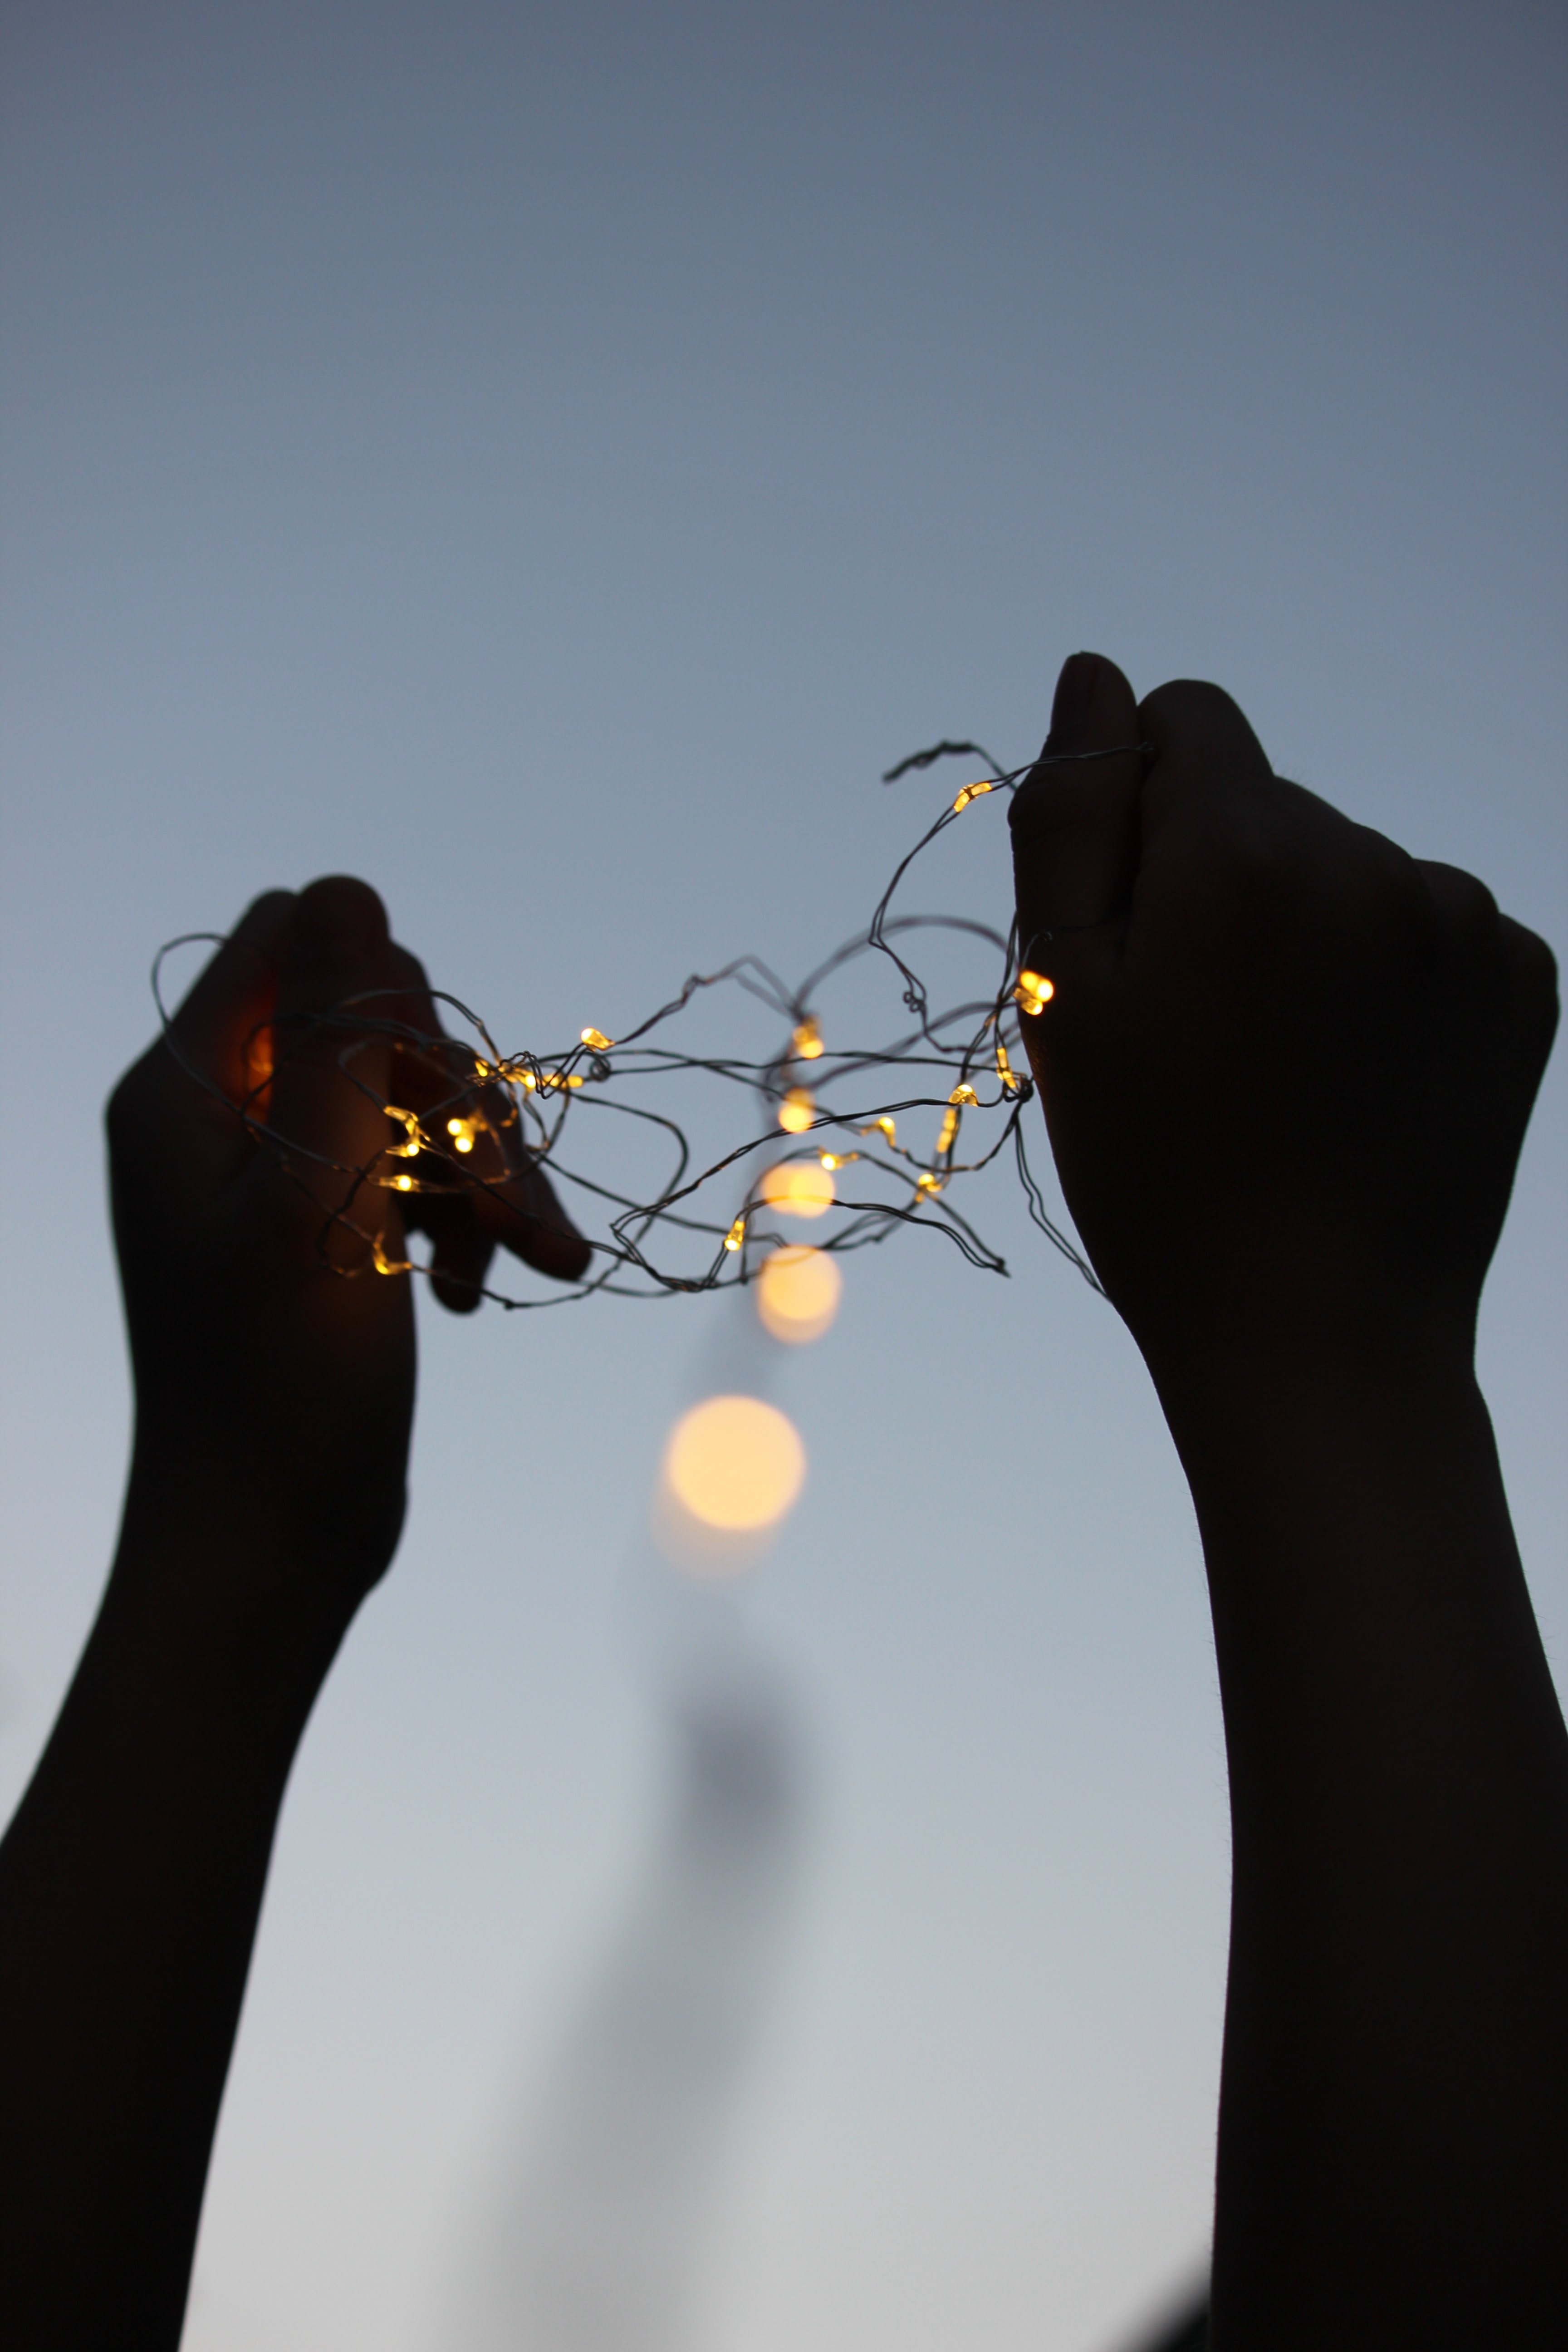 silhouette person holding string lights